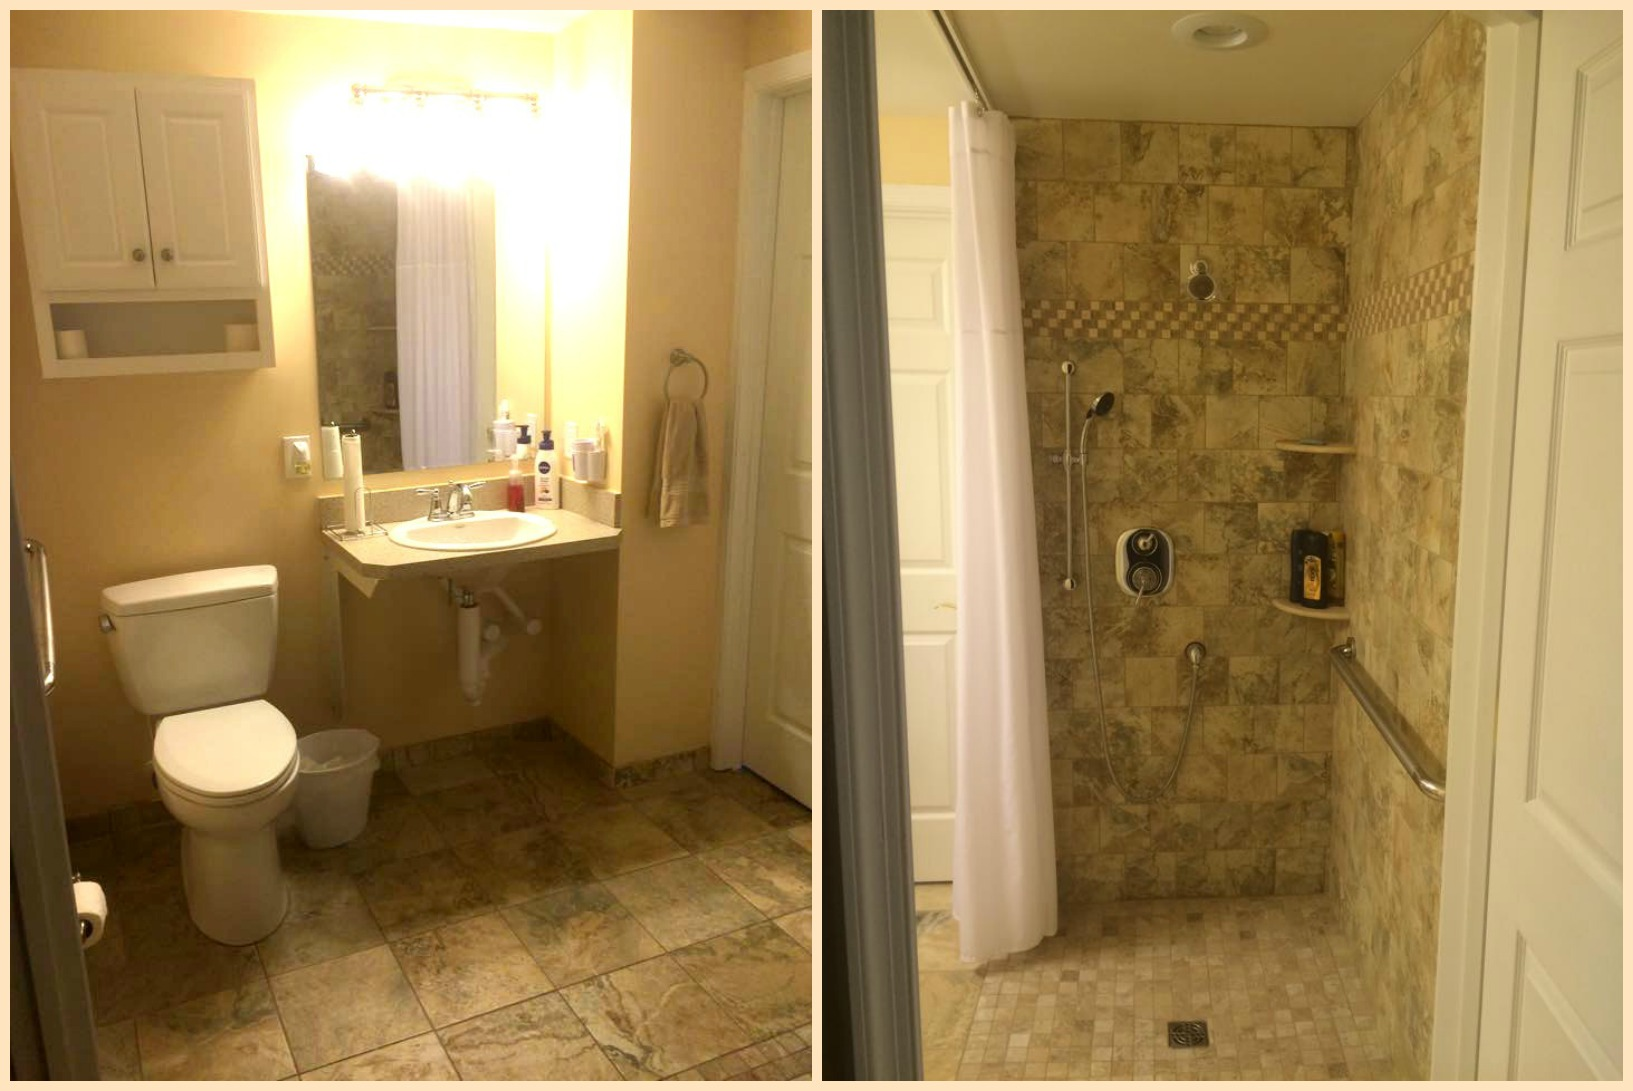 ACCESSIBLE BATHROOMS - Have Wheelchair Will Travel